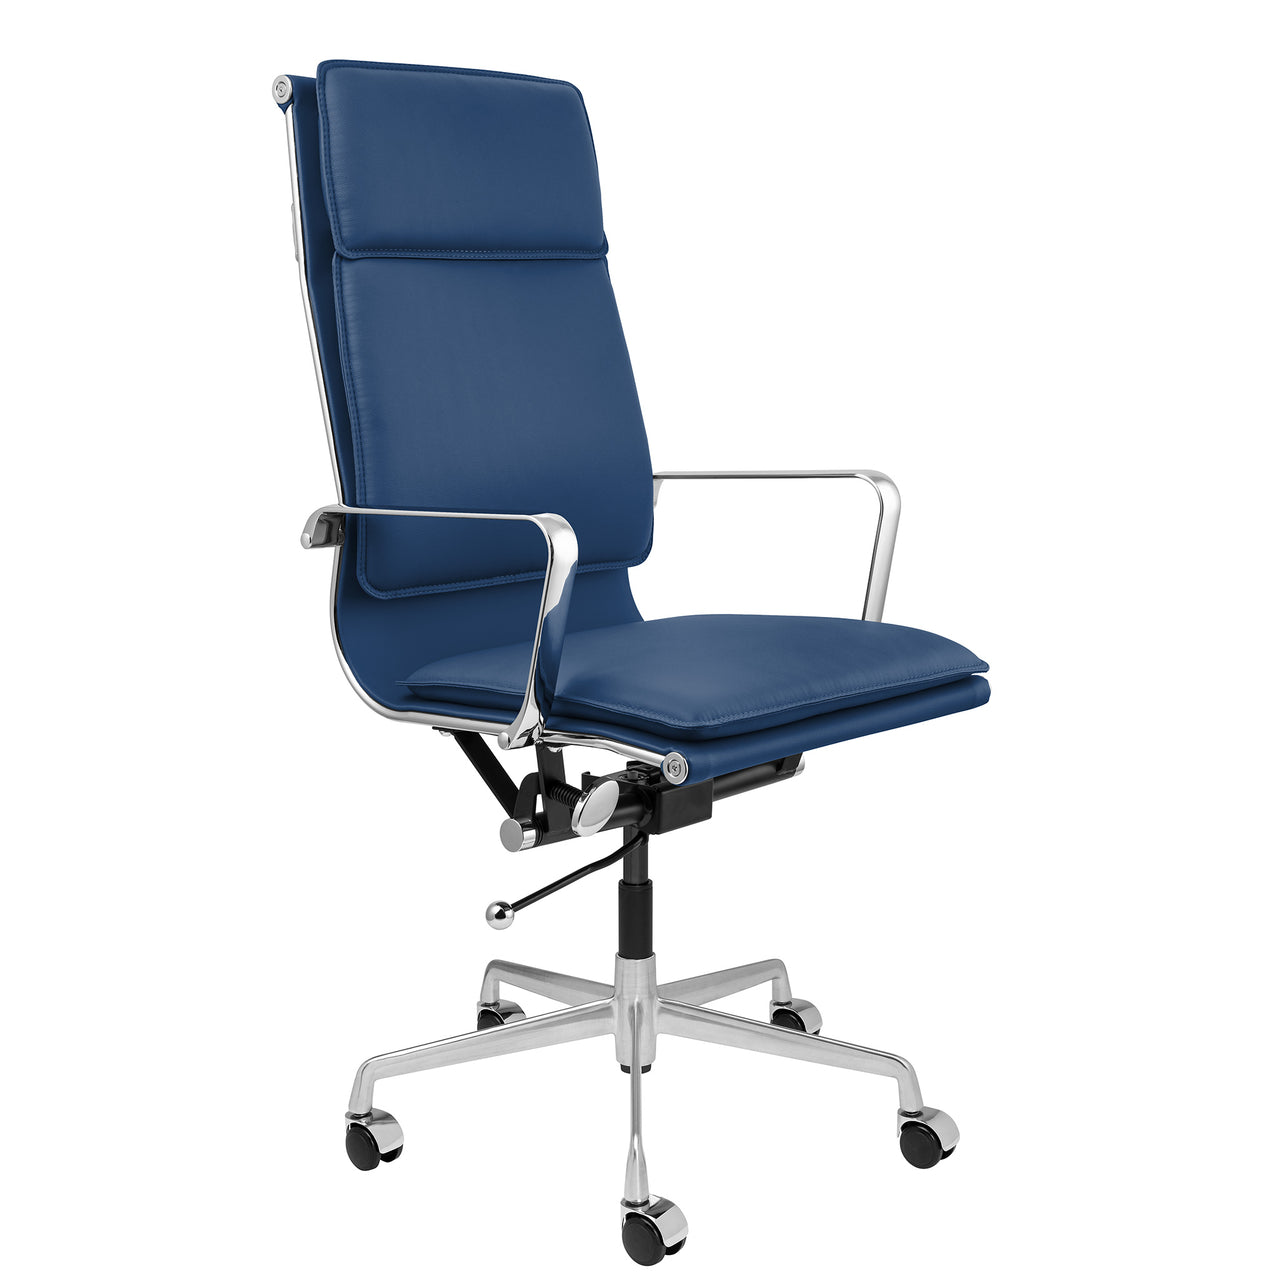 Lexi Tall Back Soft Pad Office Chair (Blue)